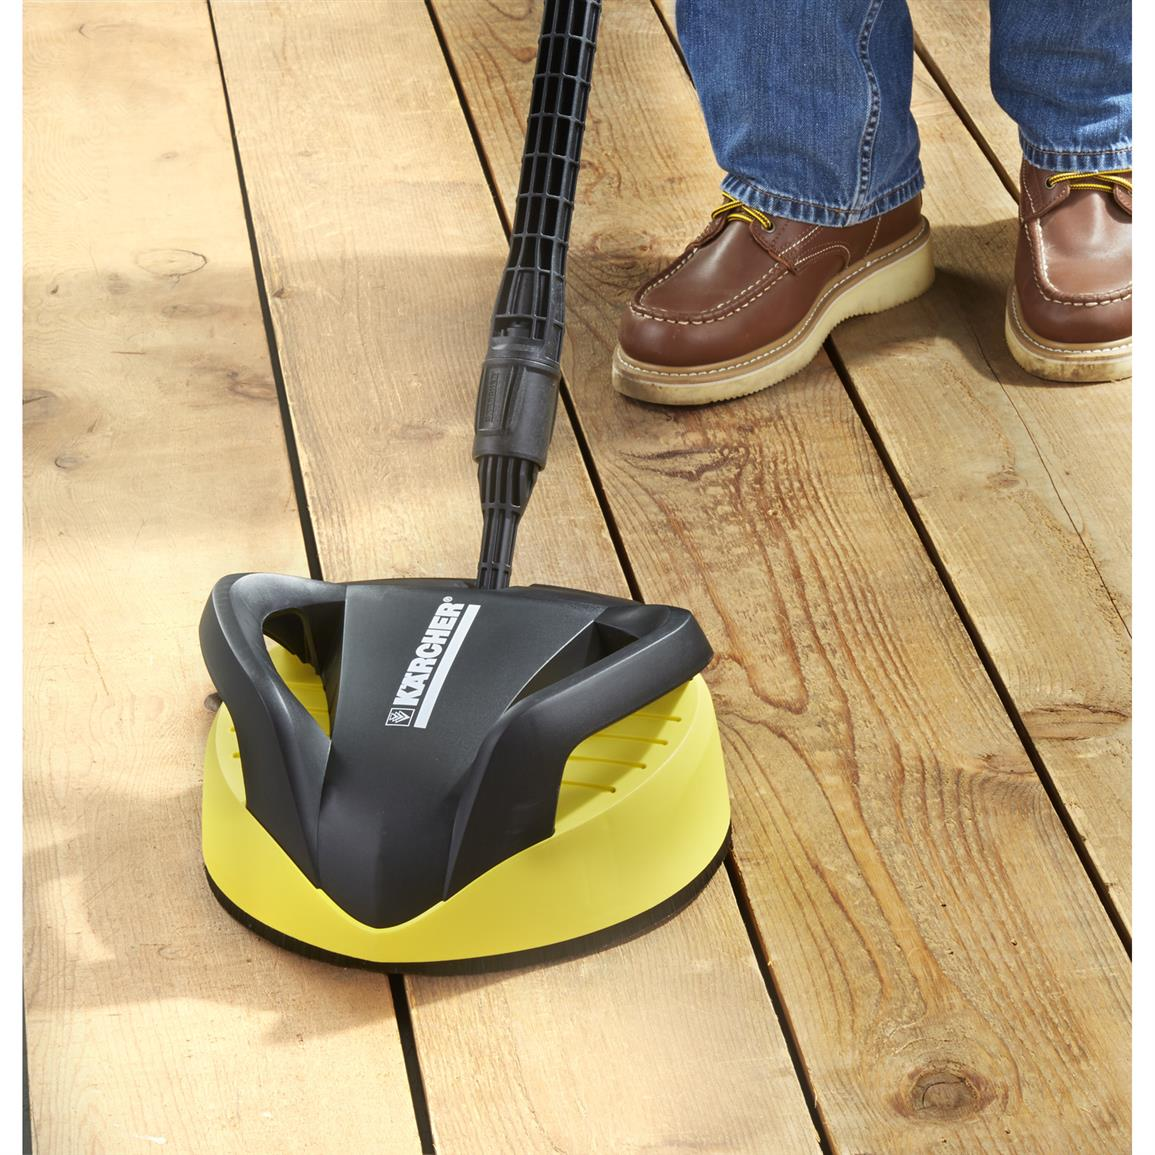 Karcher T250 Deck and Driveway Surface Cleaner